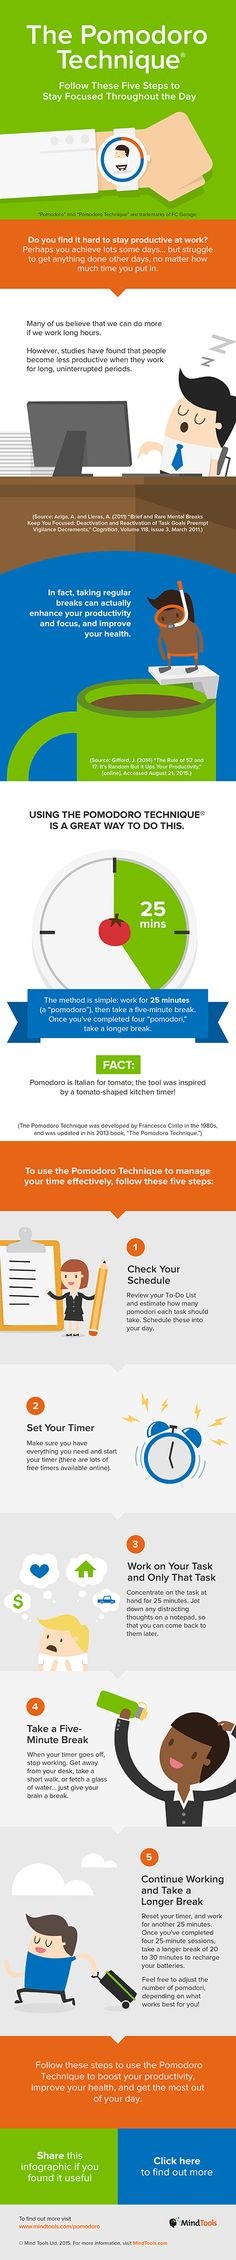 The Pomodoro Technique – Follow these five steps to stay focused throughout the day